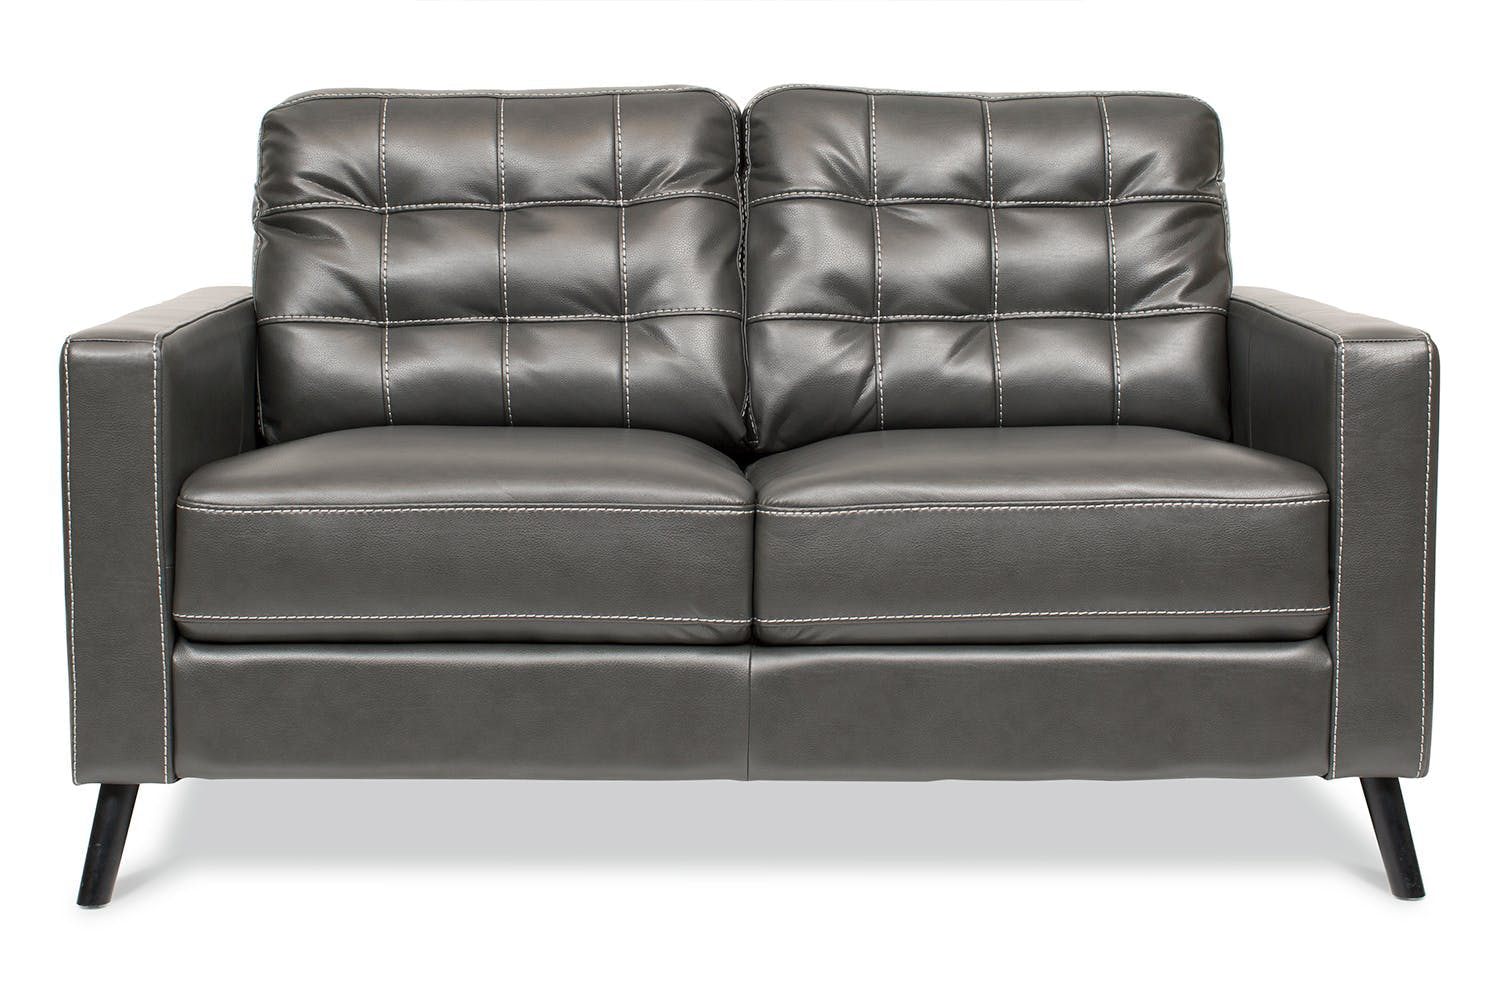 Phenomenal Leather Sofas Harvey Norman Ireland Squirreltailoven Fun Painted Chair Ideas Images Squirreltailovenorg